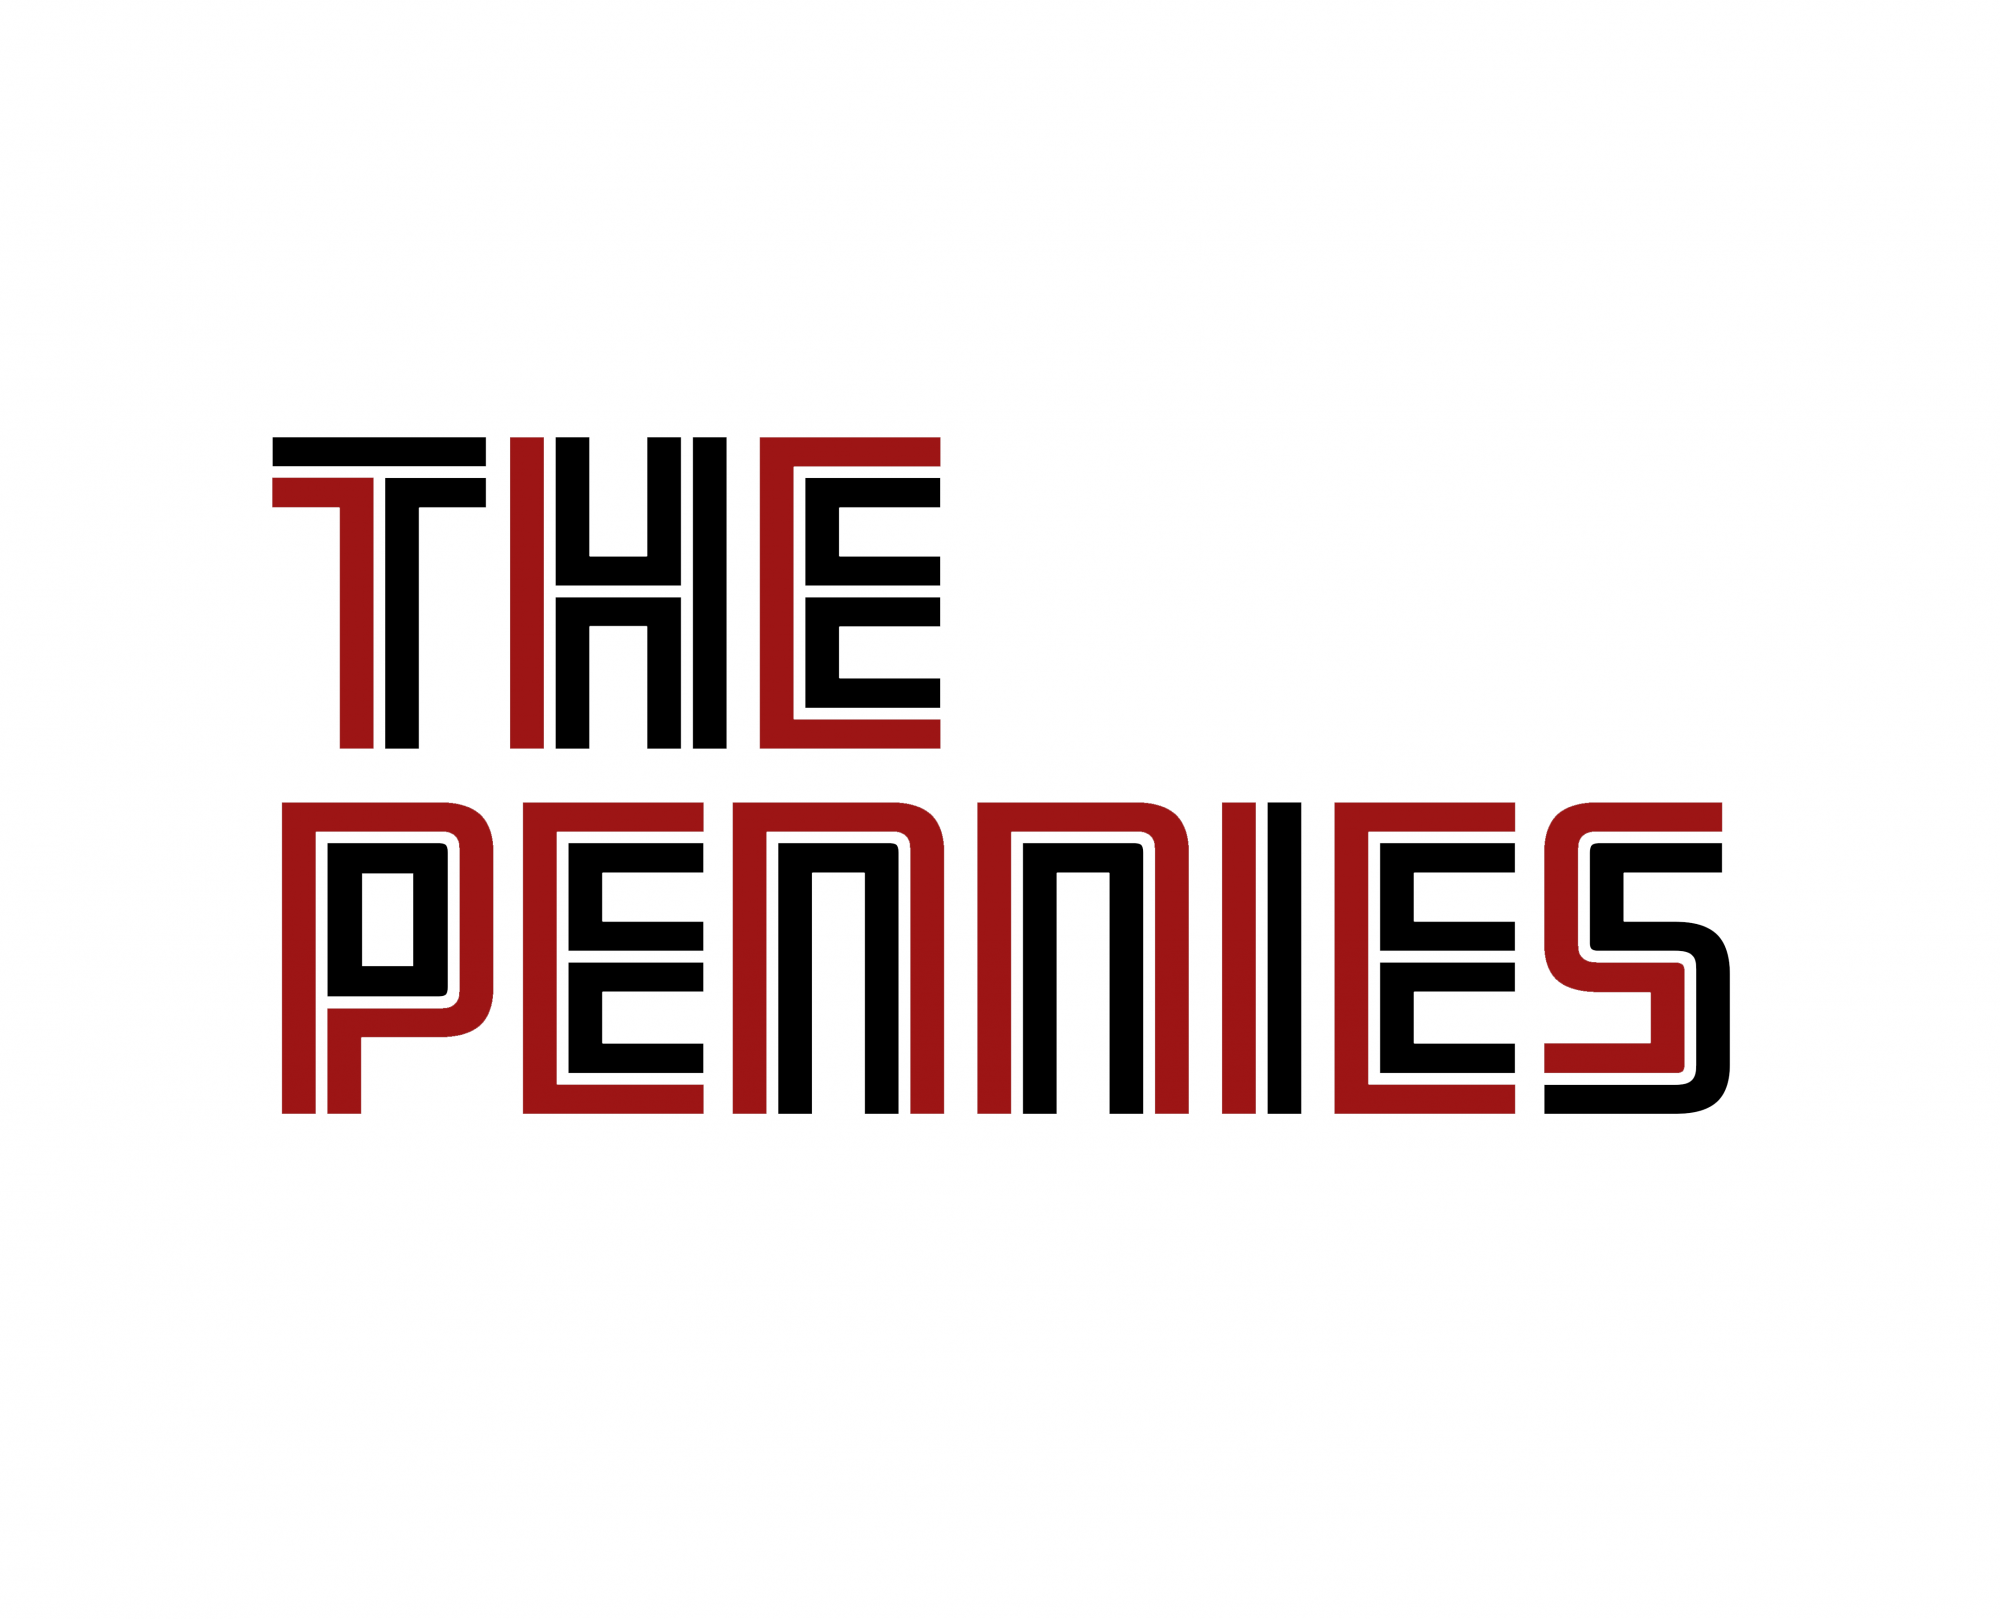 The Pennies